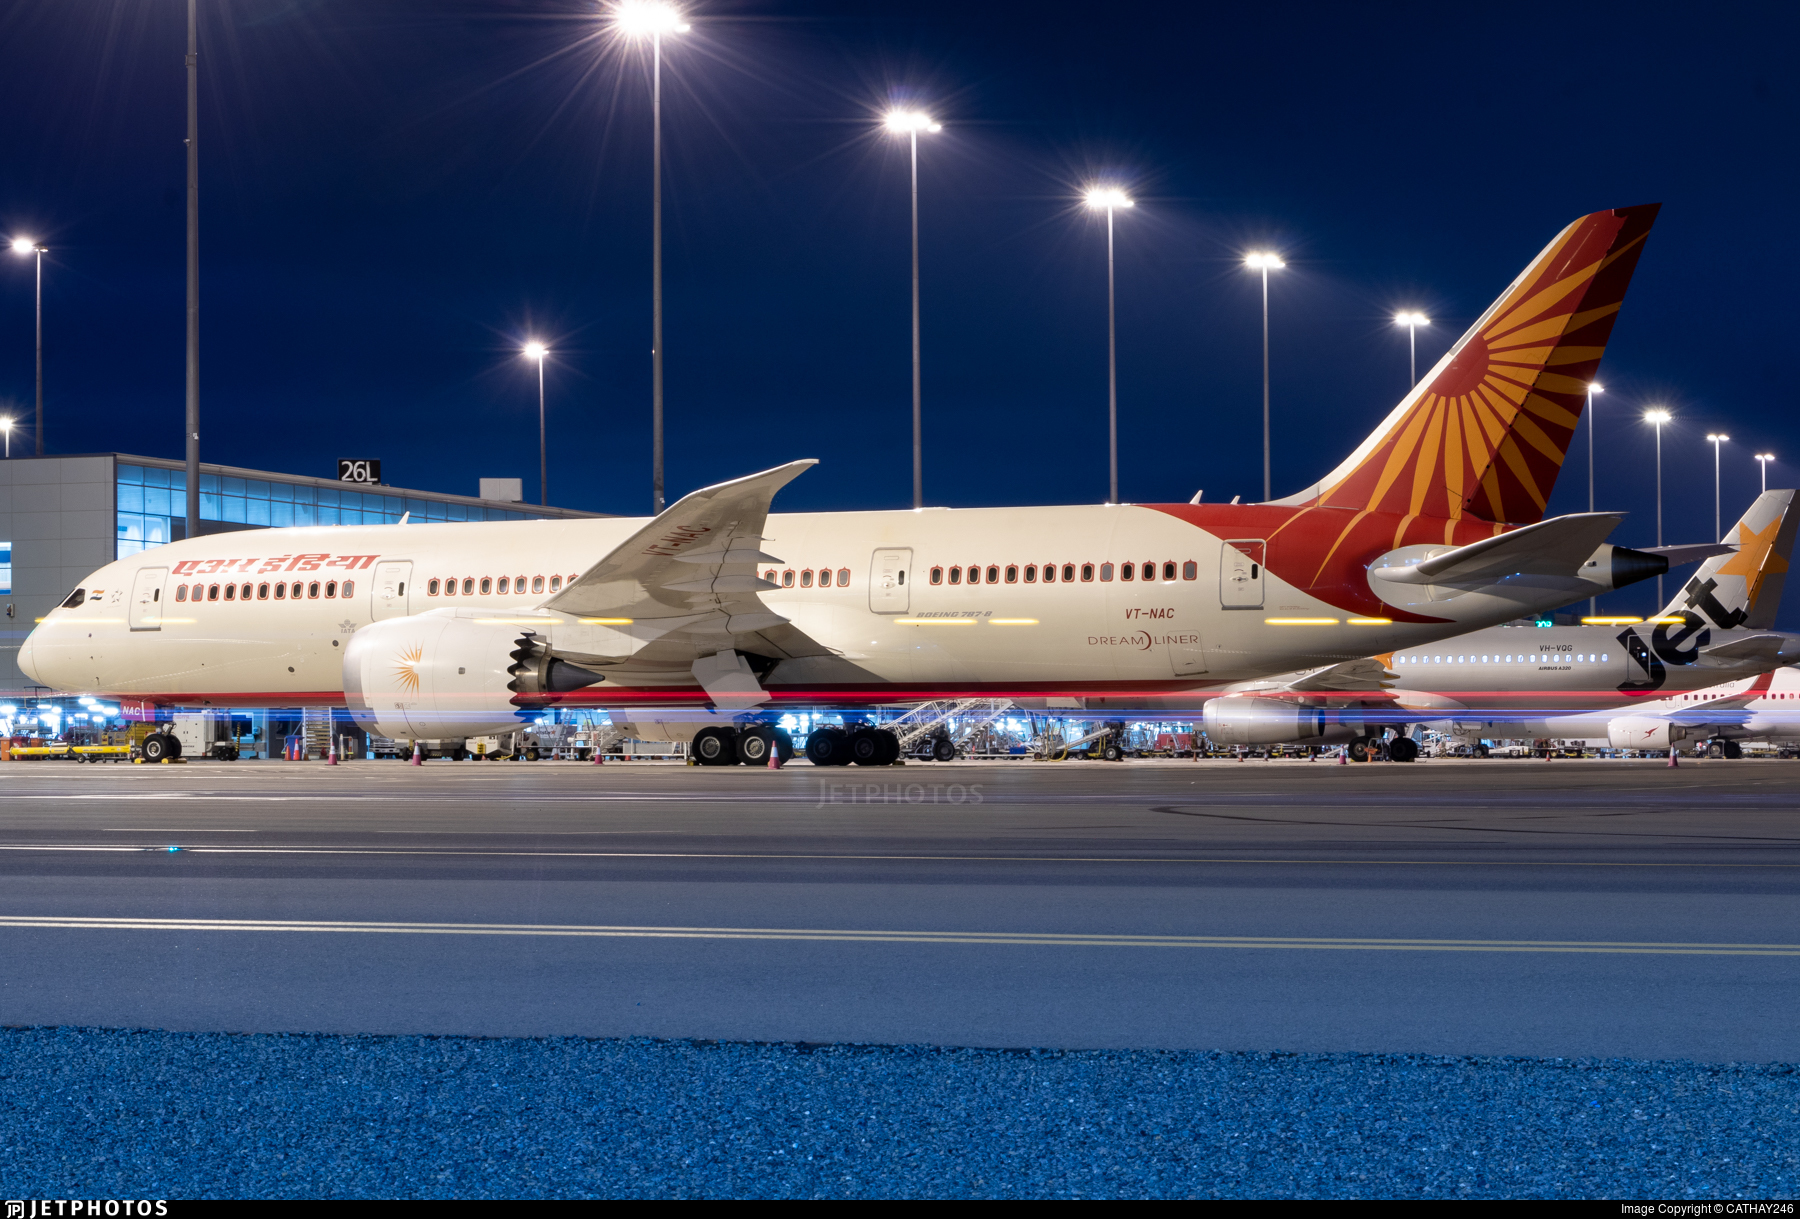 VT-NAC - Boeing 787-8 Dreamliner - Air India